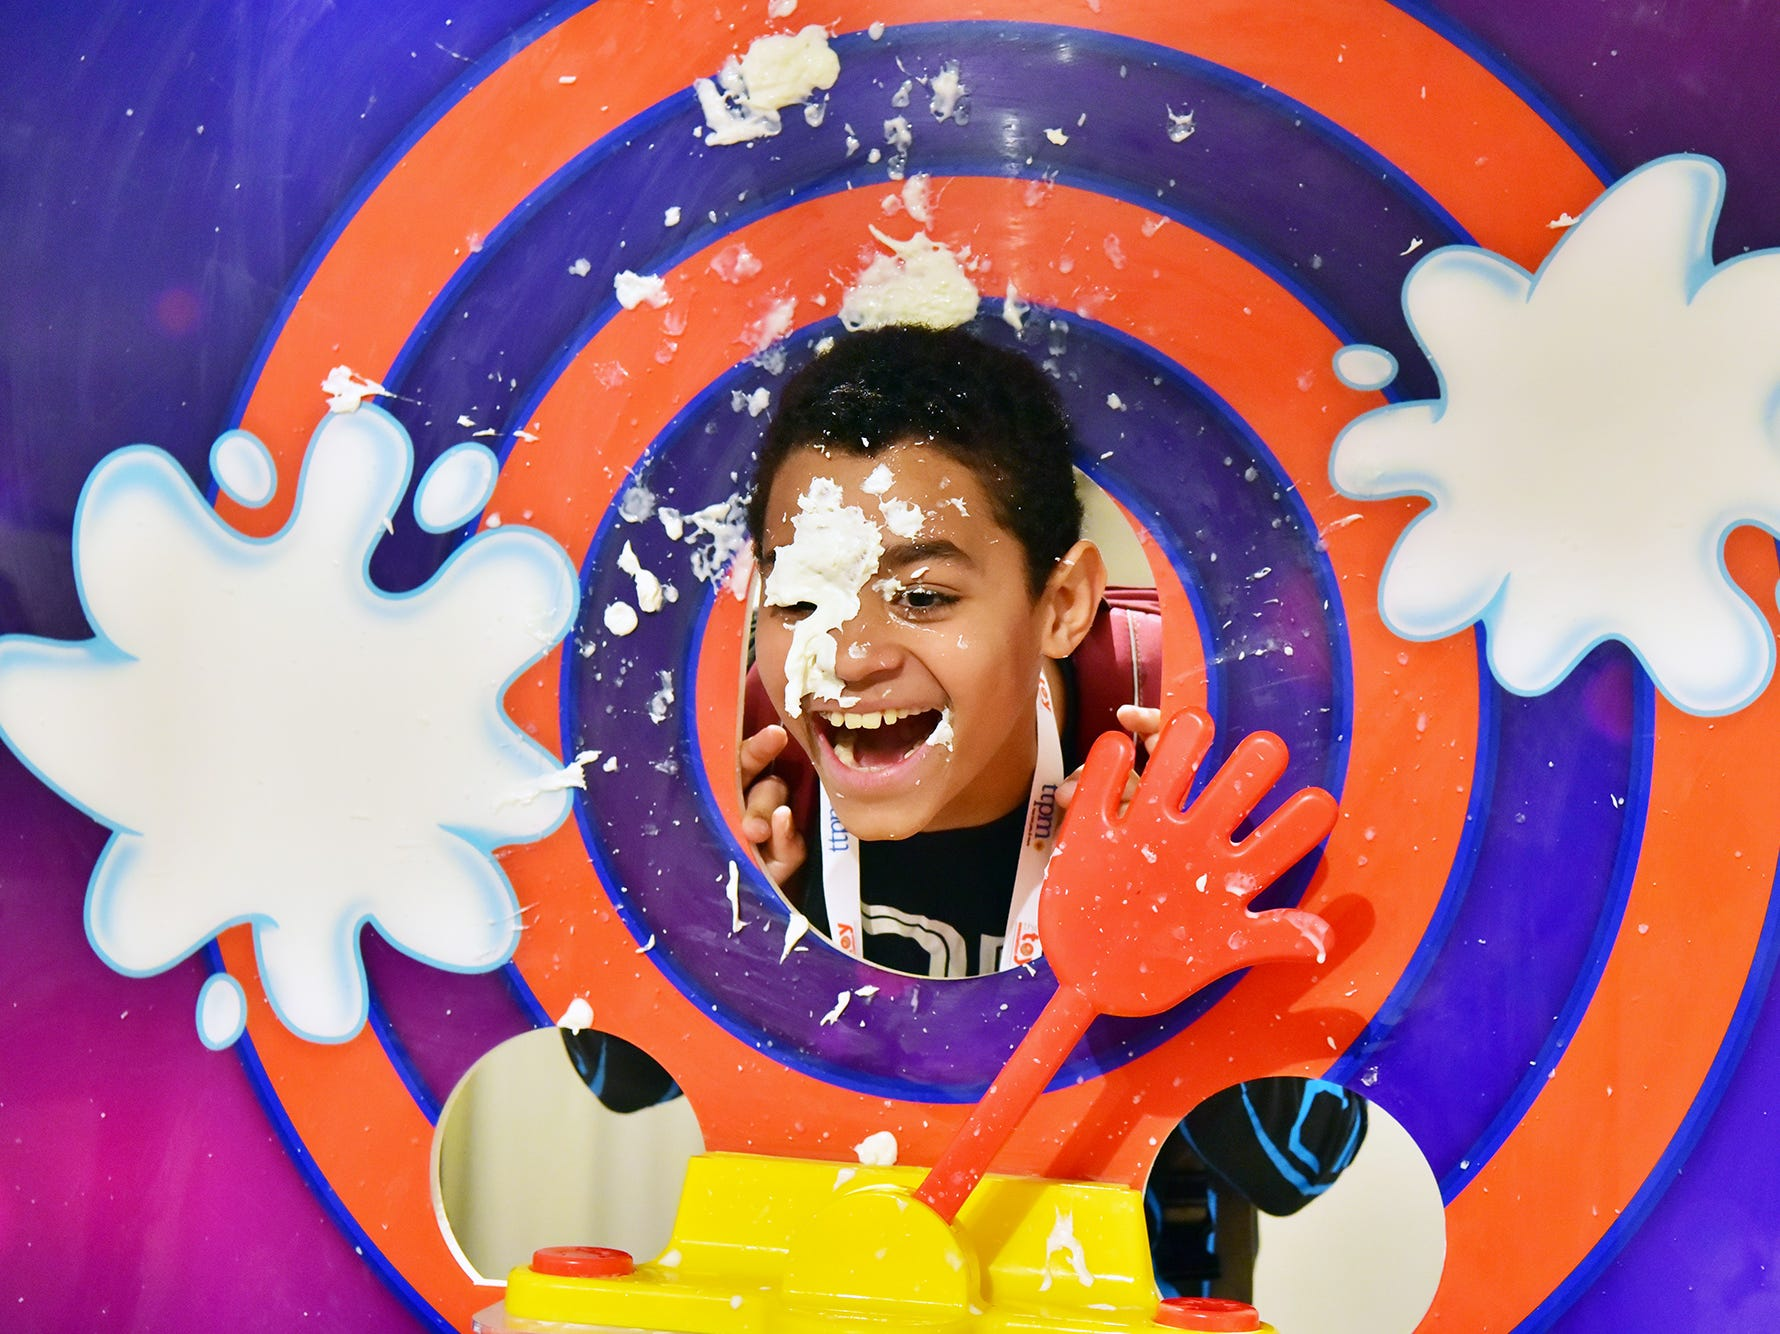 """BUSSINES/MONEY: William Yarde, 10, of Maplewood, NJ, gets hit with wiped cream launched from a """"Pie Face Cannon"""" at the TTPM Spring Toy Showcase in New York, NY., on Thursday, April 26."""